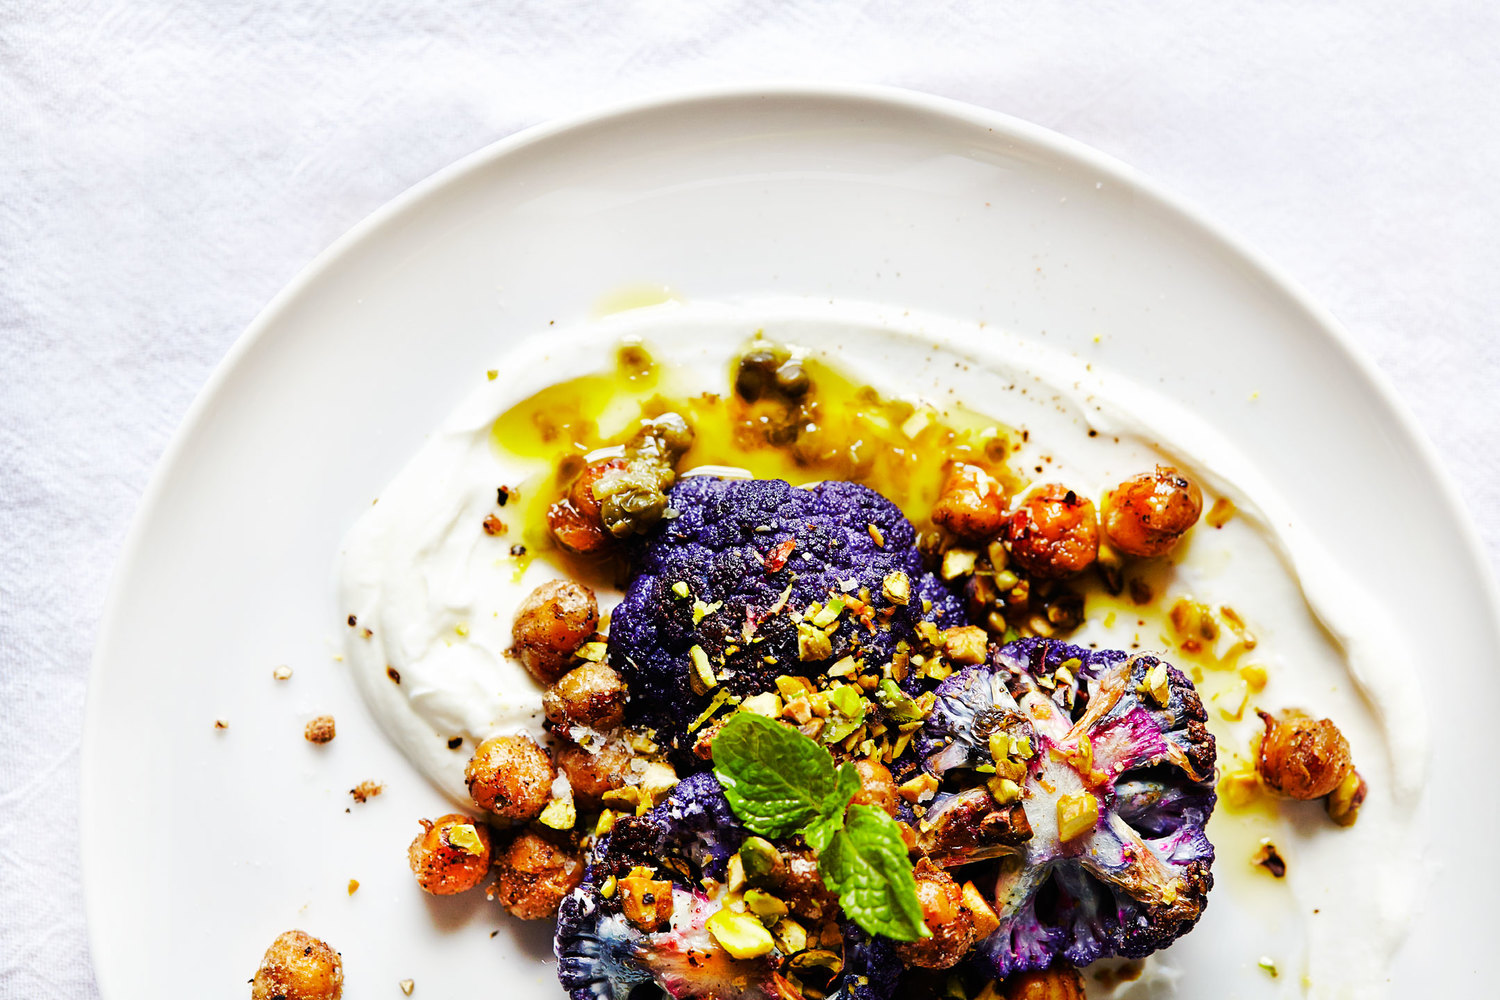 Roasted Cauliflower, Coriander Chickpeas & Caper Sauce (GF, V)